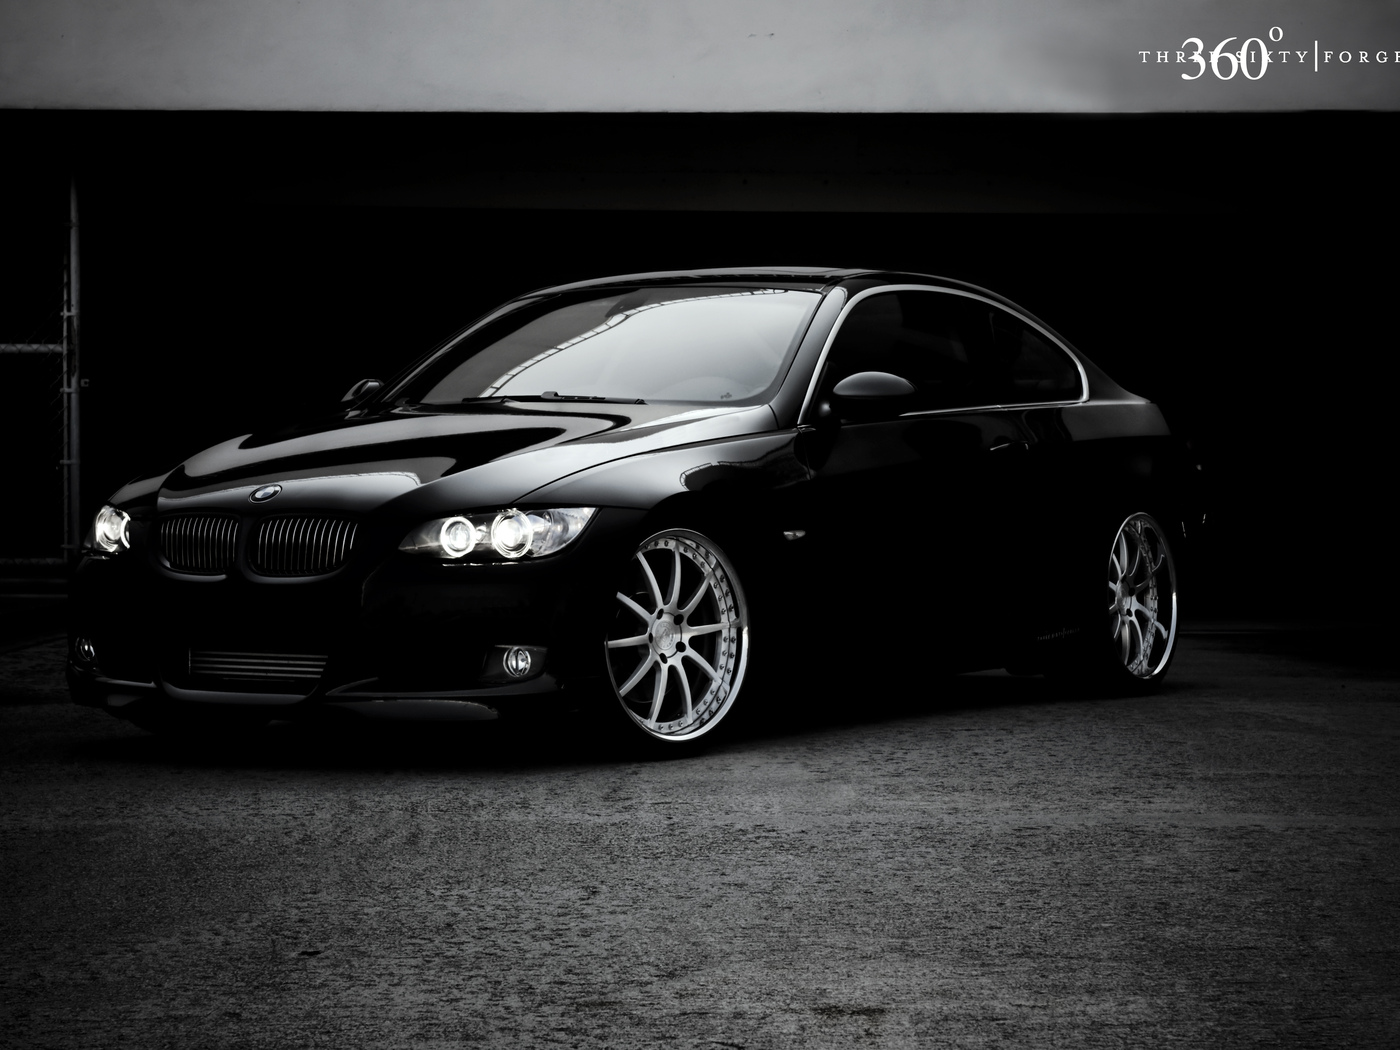 m3, чёрный, black, bmw, 360 three sixty forged, бмв